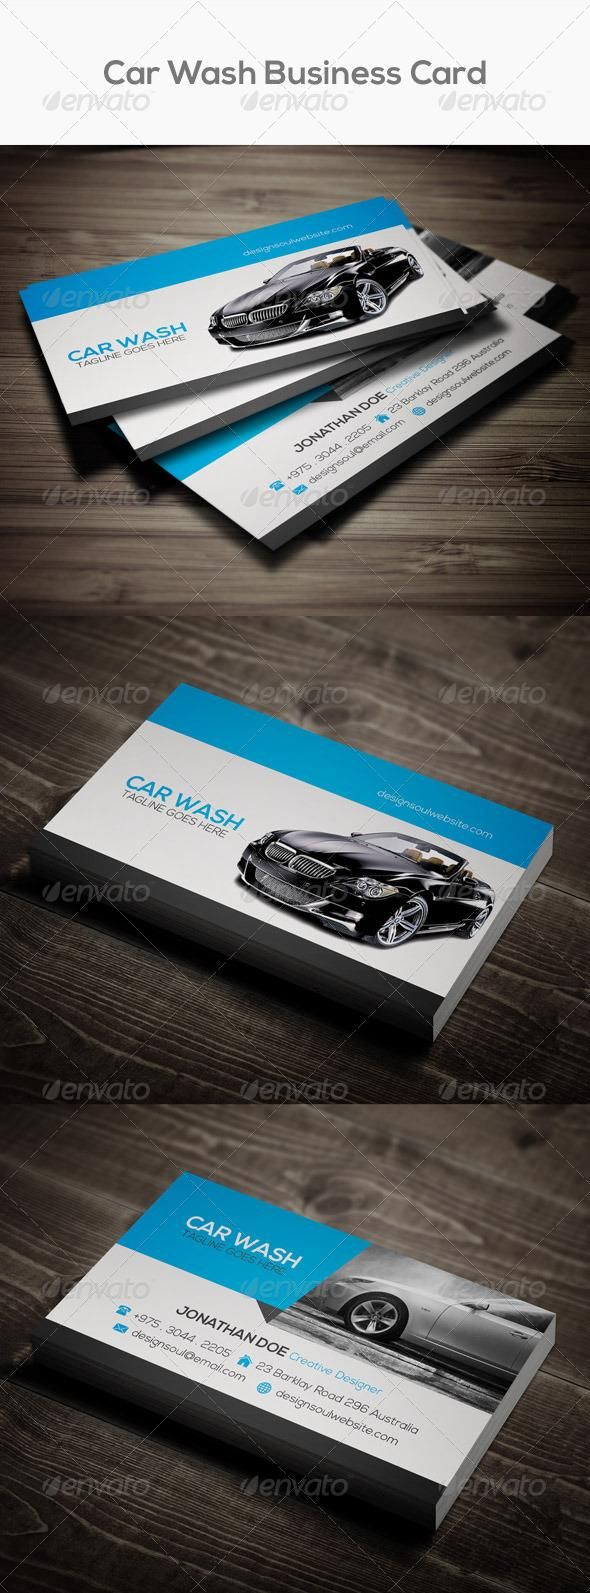 Car Wash Business Card | Car wash business, Car wash and Business cards